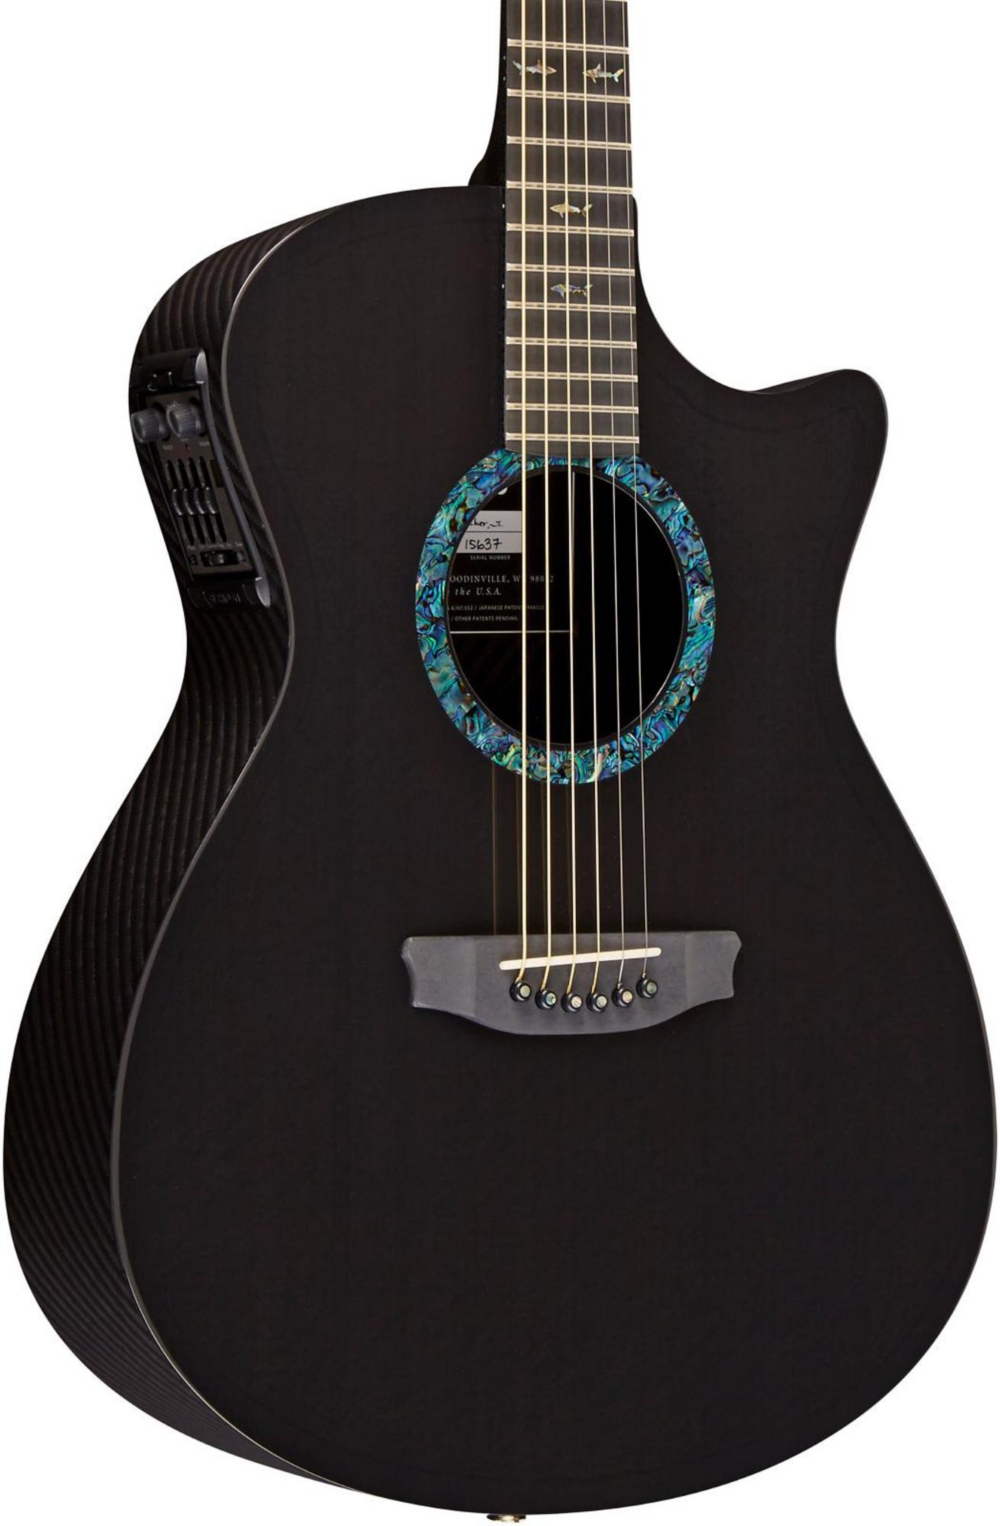 RainSong Concert Series Orchestra Acoustic-Electric Guitar Graphite by RainSong